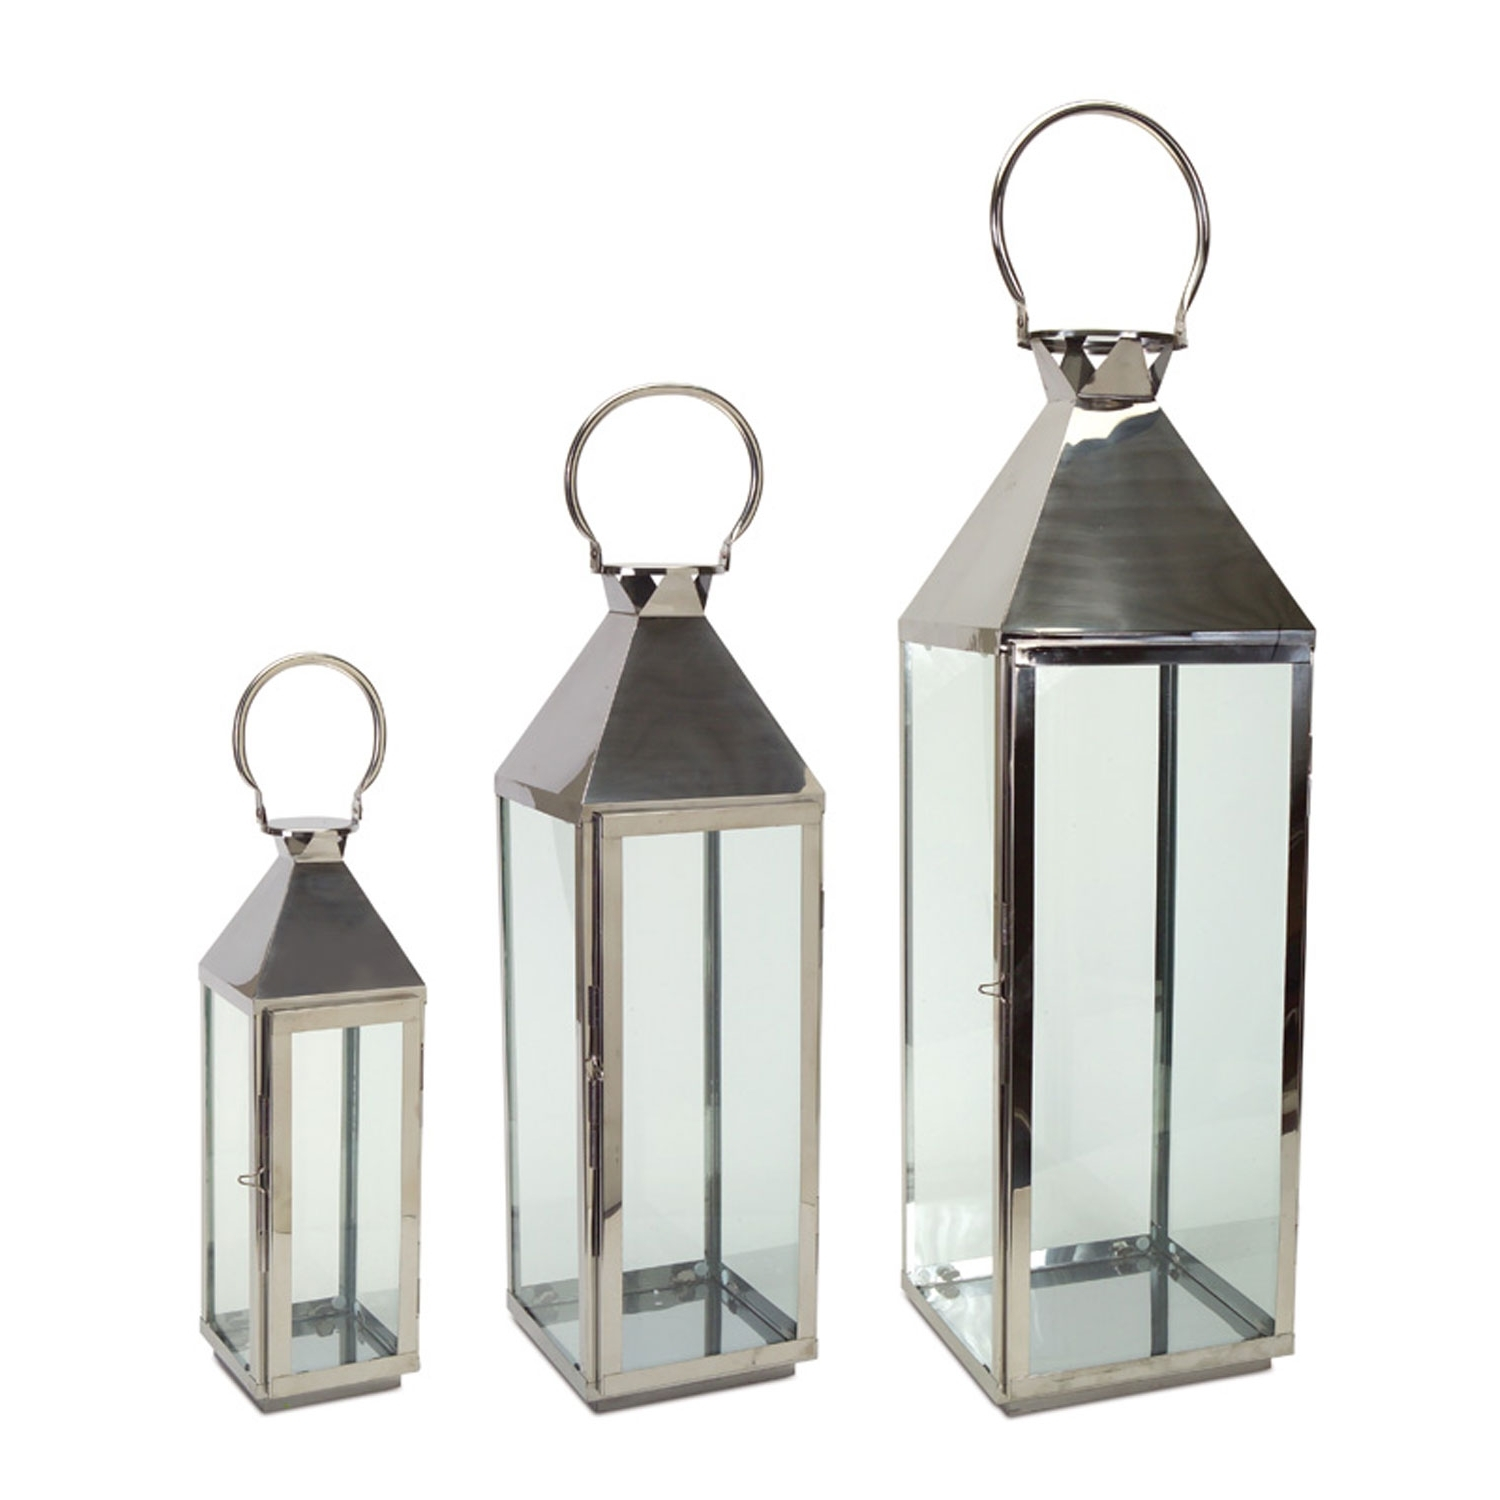 Well Known Outdoor Hanging Candle Lanterns Intended For Candle Lanterns, Outdoor Hanging Lanterns, Decorative On Sale (View 8 of 20)